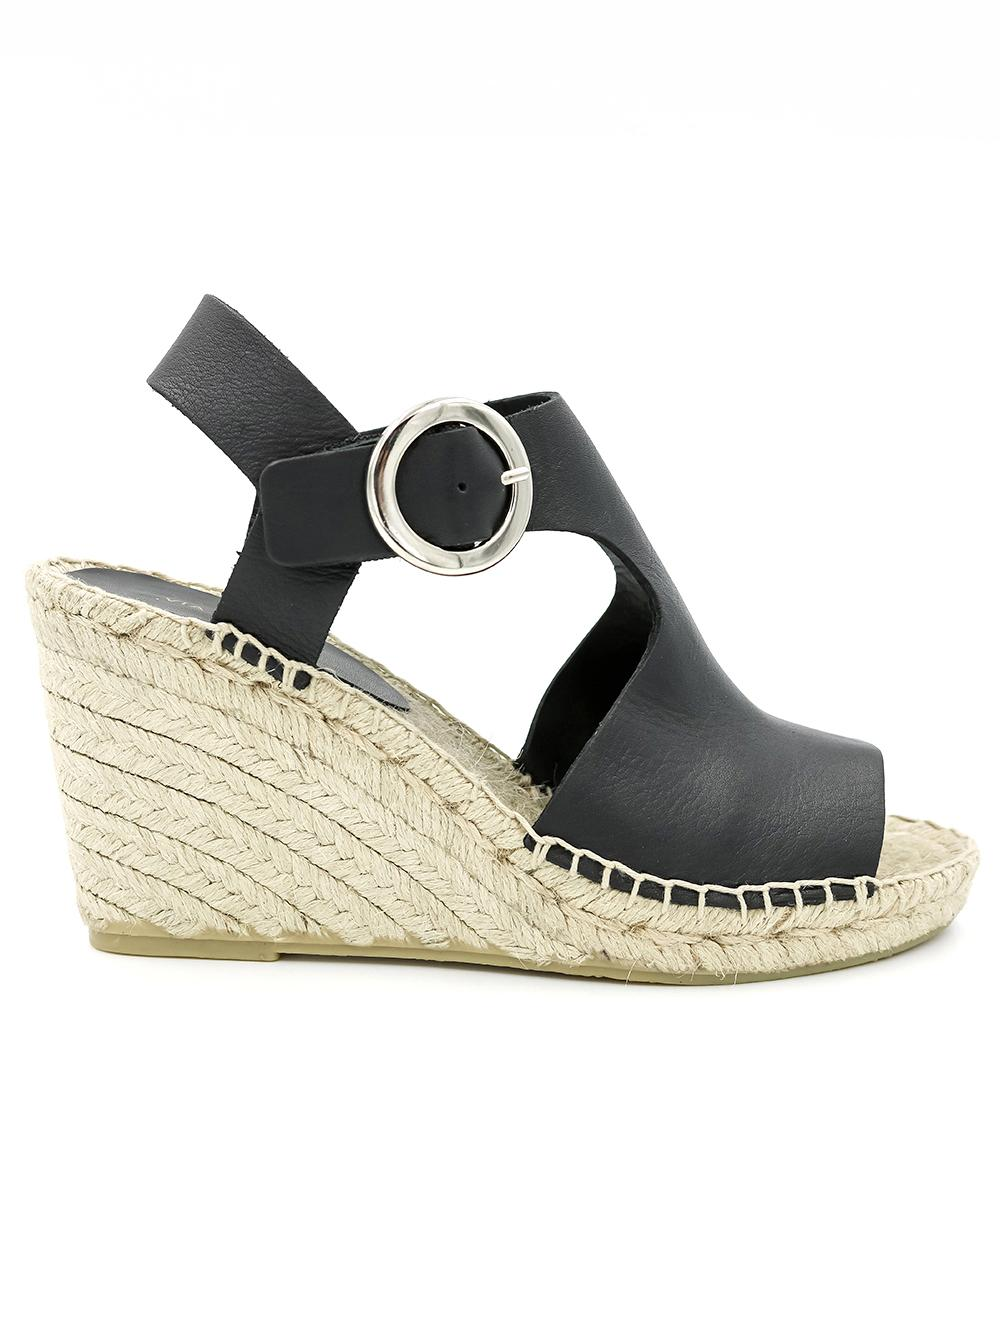 Leather Espadrille Wedge With Cutouts